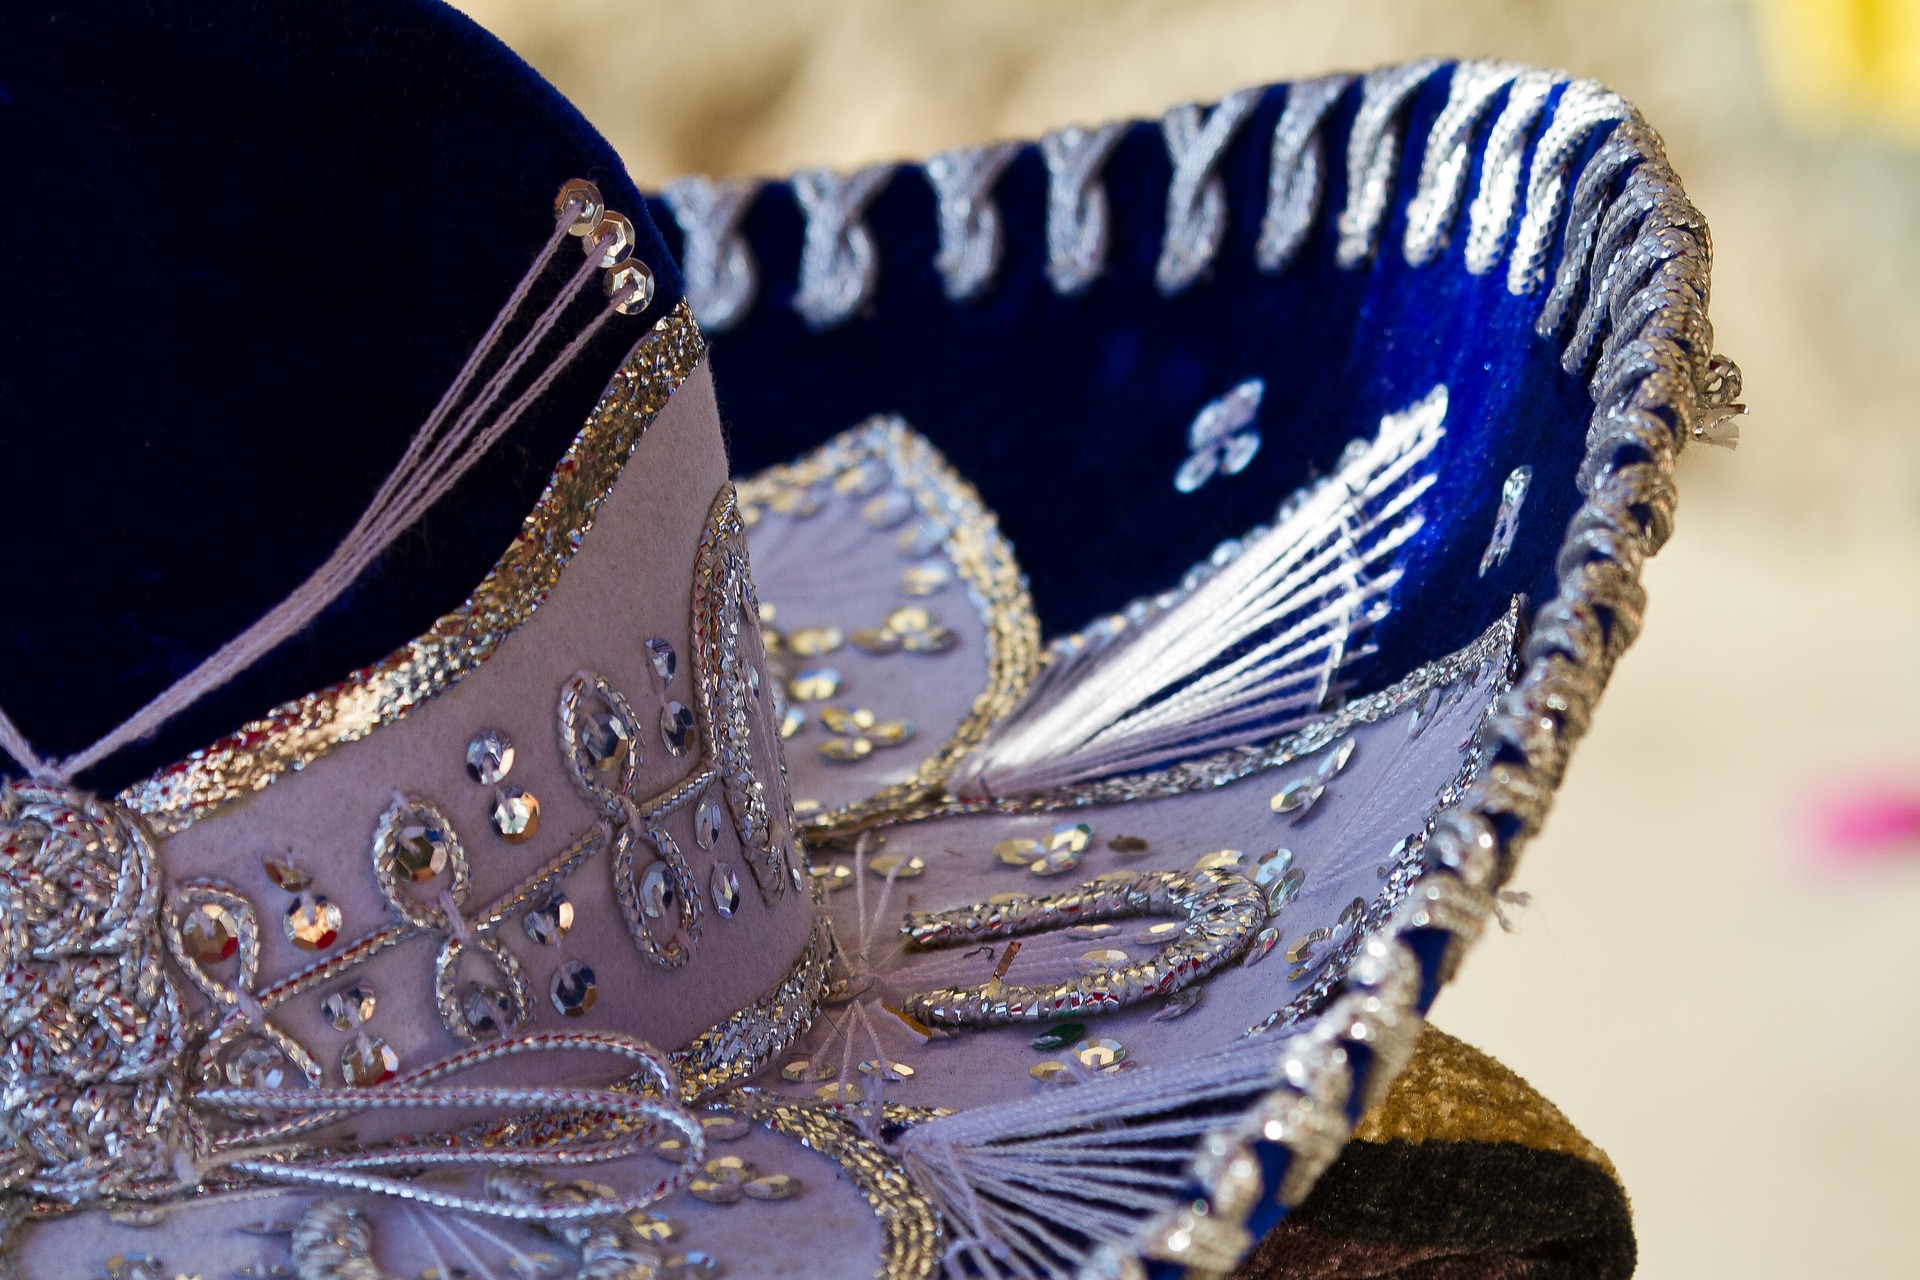 6 Ways to Celebrate Cinco de Mayo at Your Bar or Restaurant